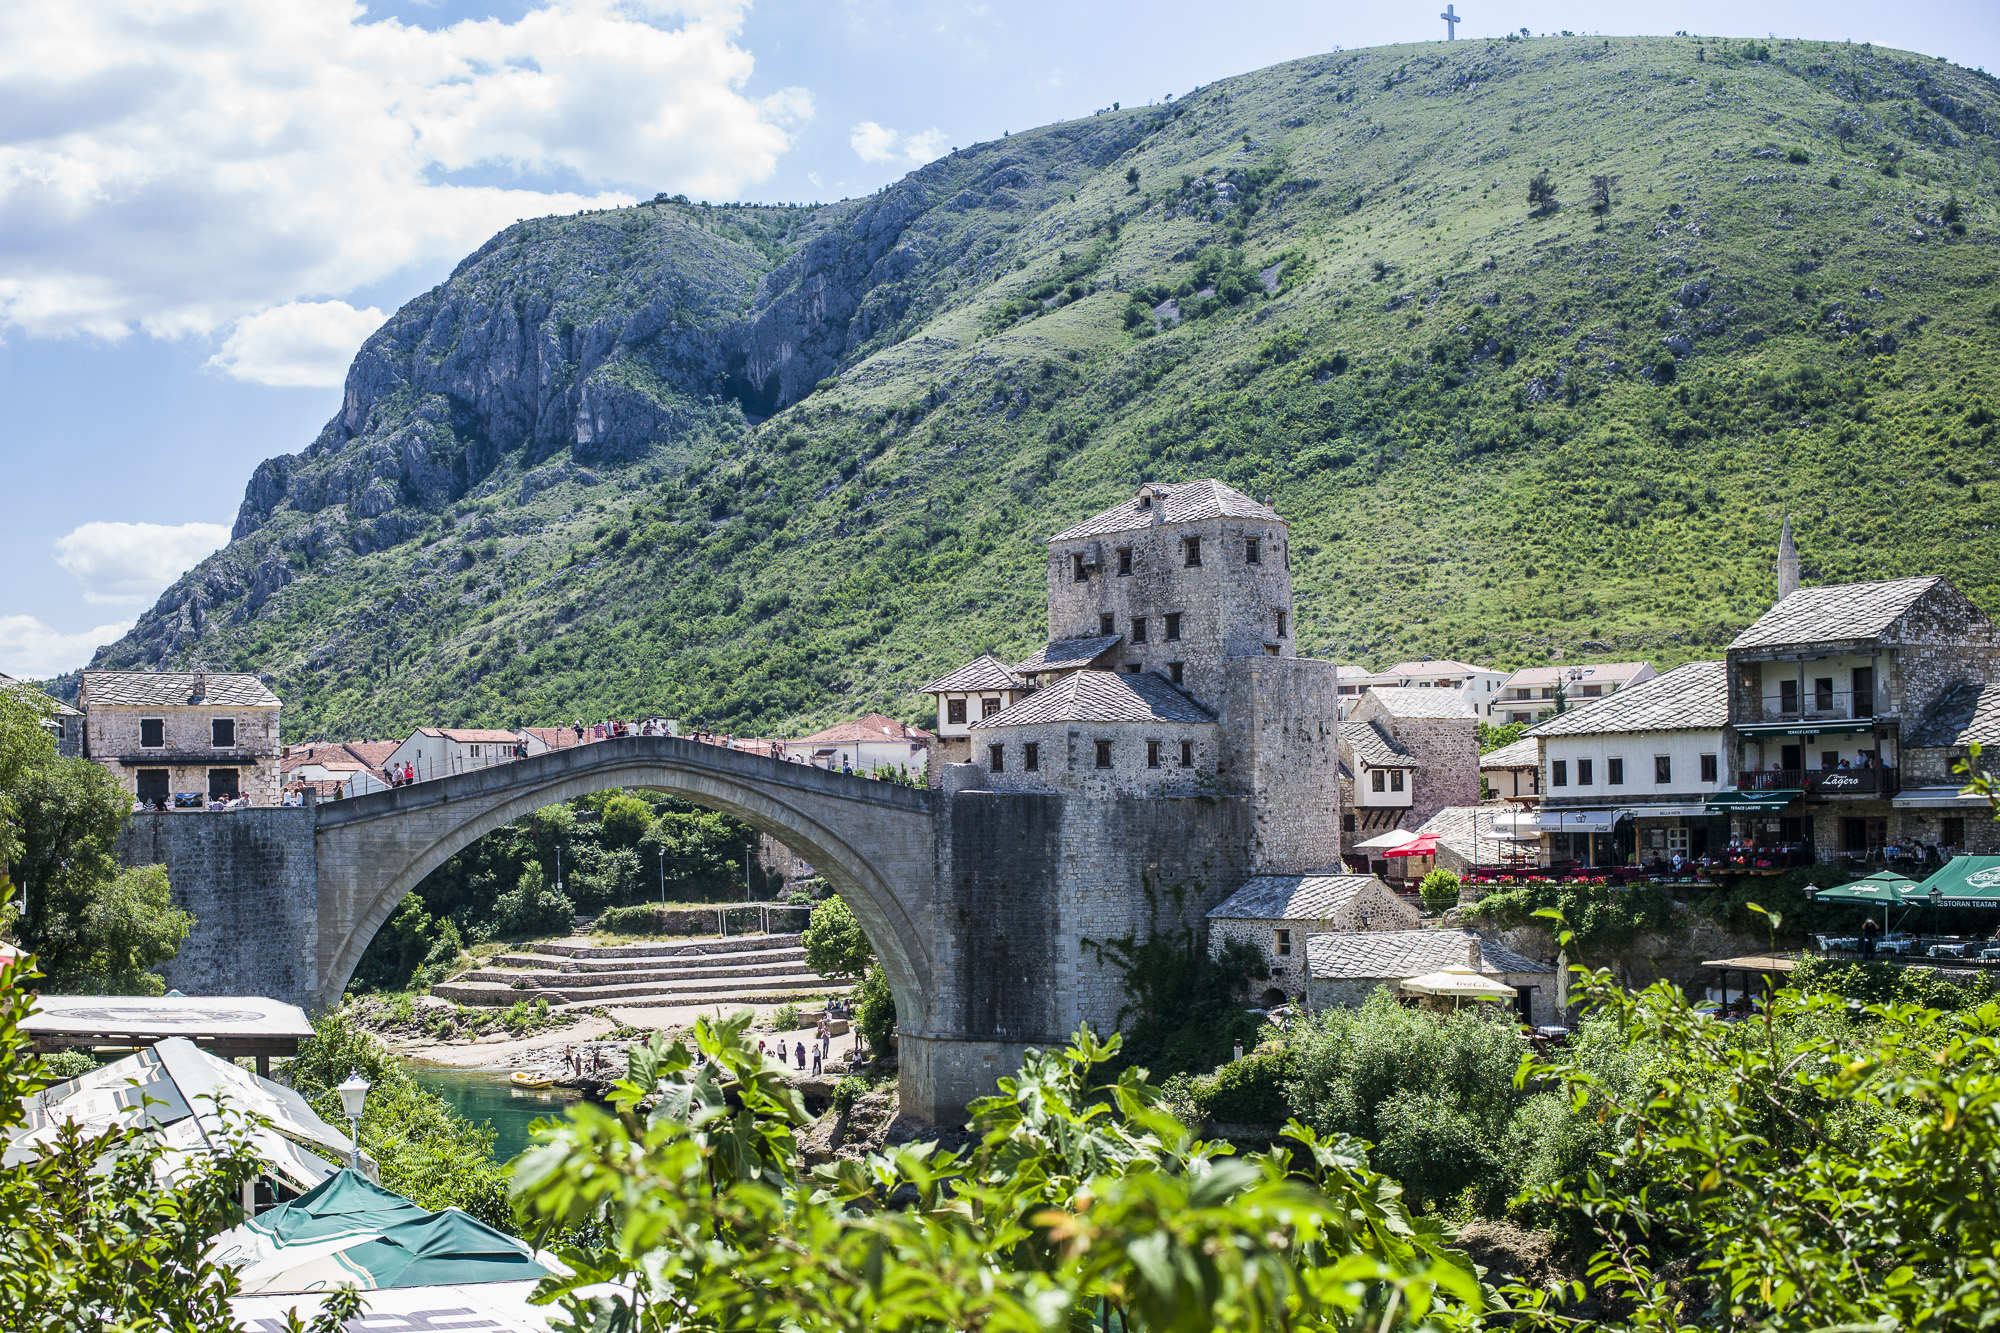 From the hill with the cross, the Croat forces shelled Mostar